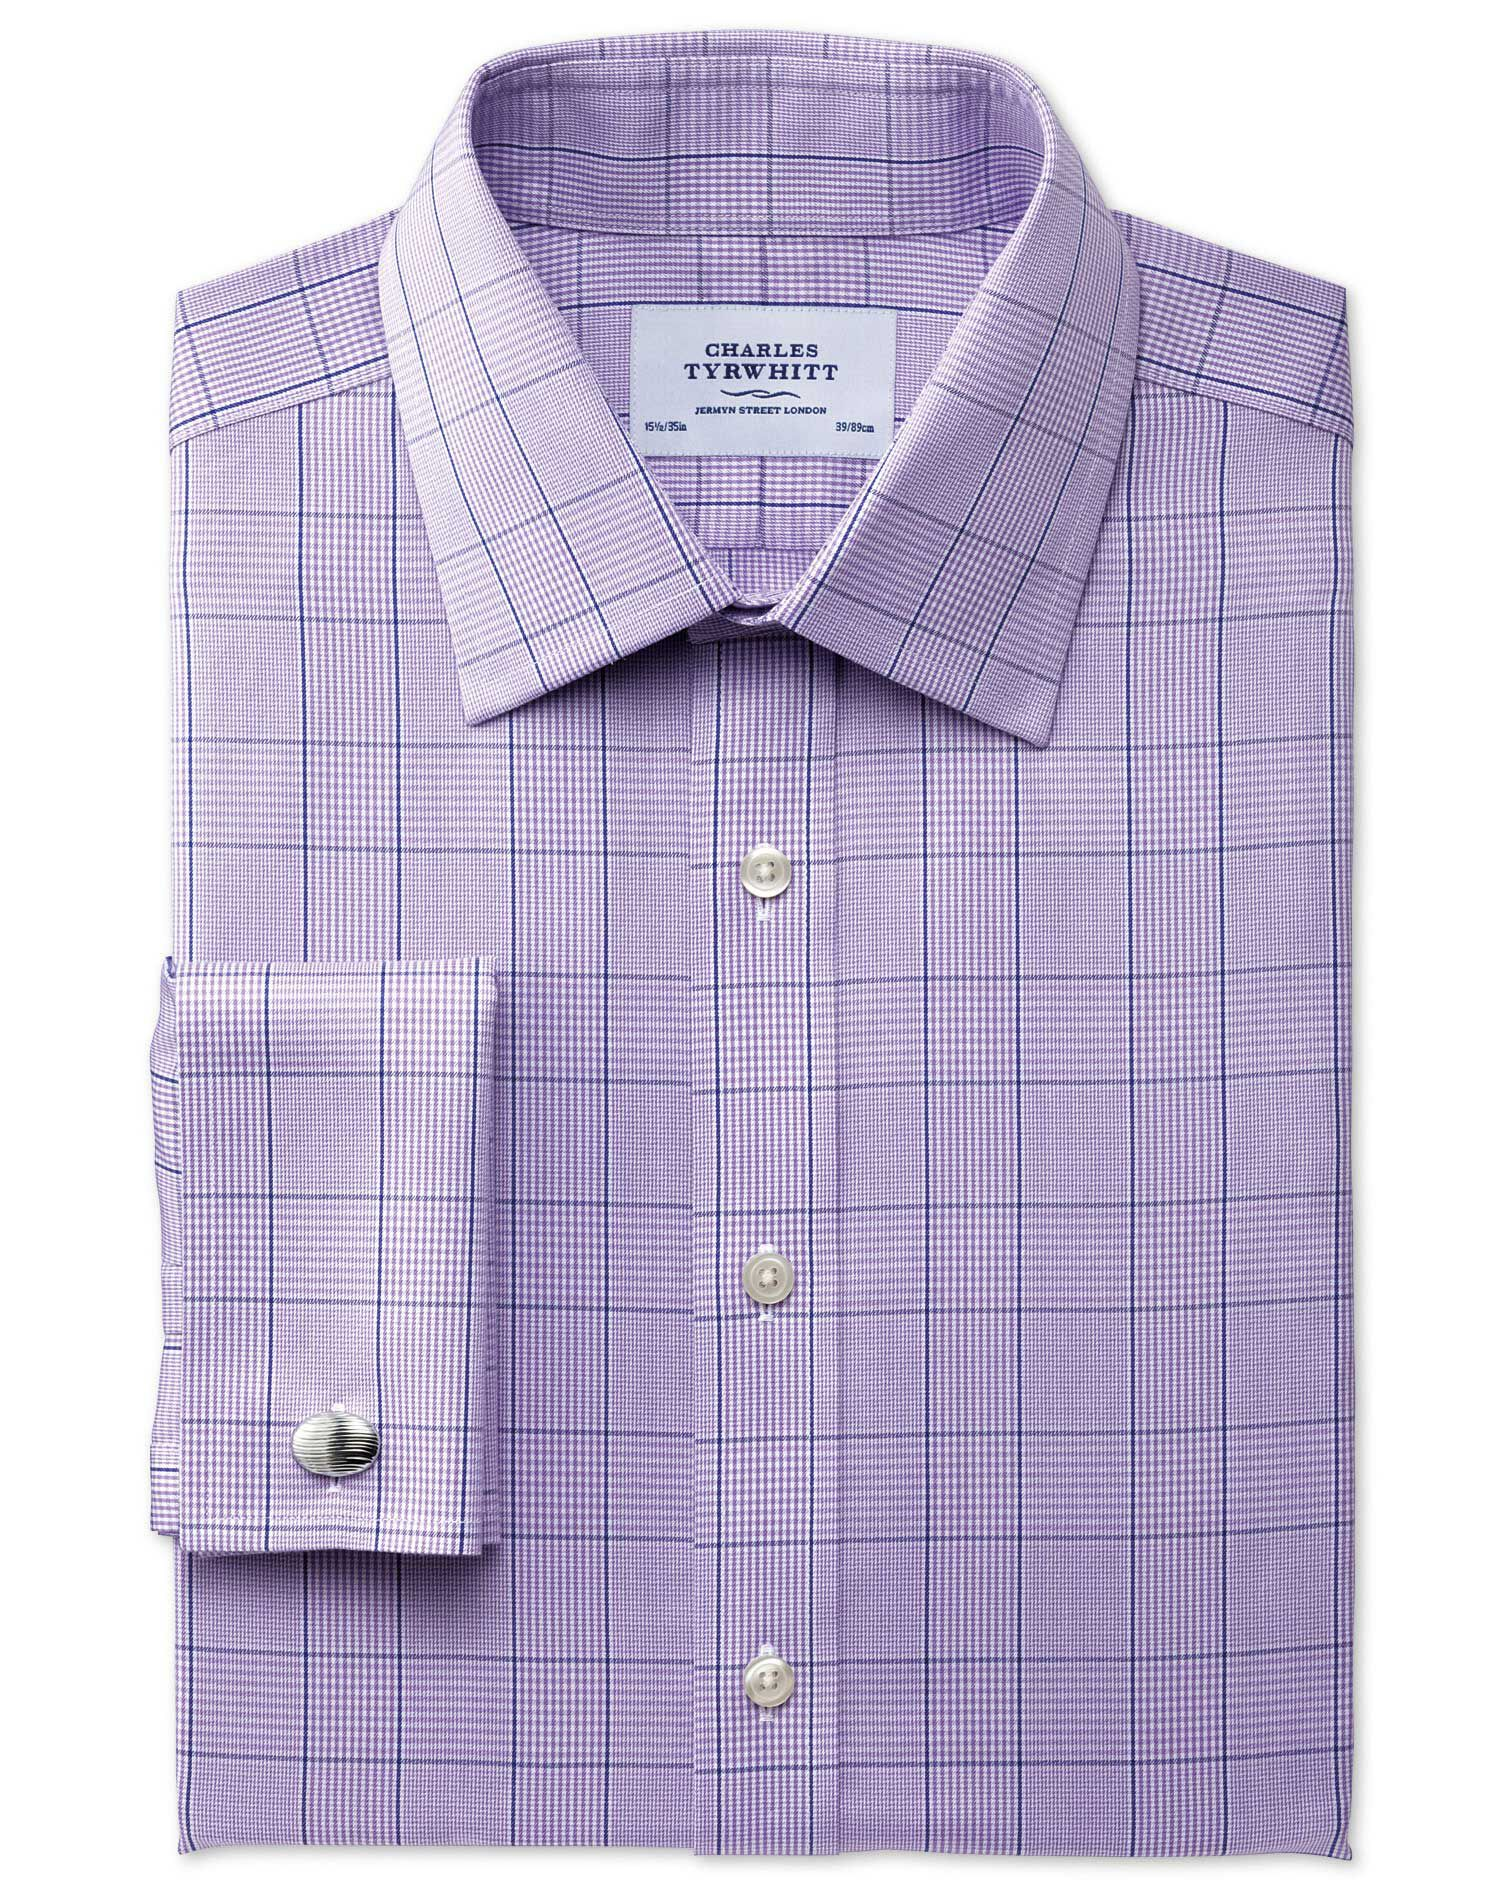 Slim Fit Non-Iron Prince Of Wales Lilac Cotton Formal Shirt Single Cuff Size 17.5/35 by Charles Tyrw